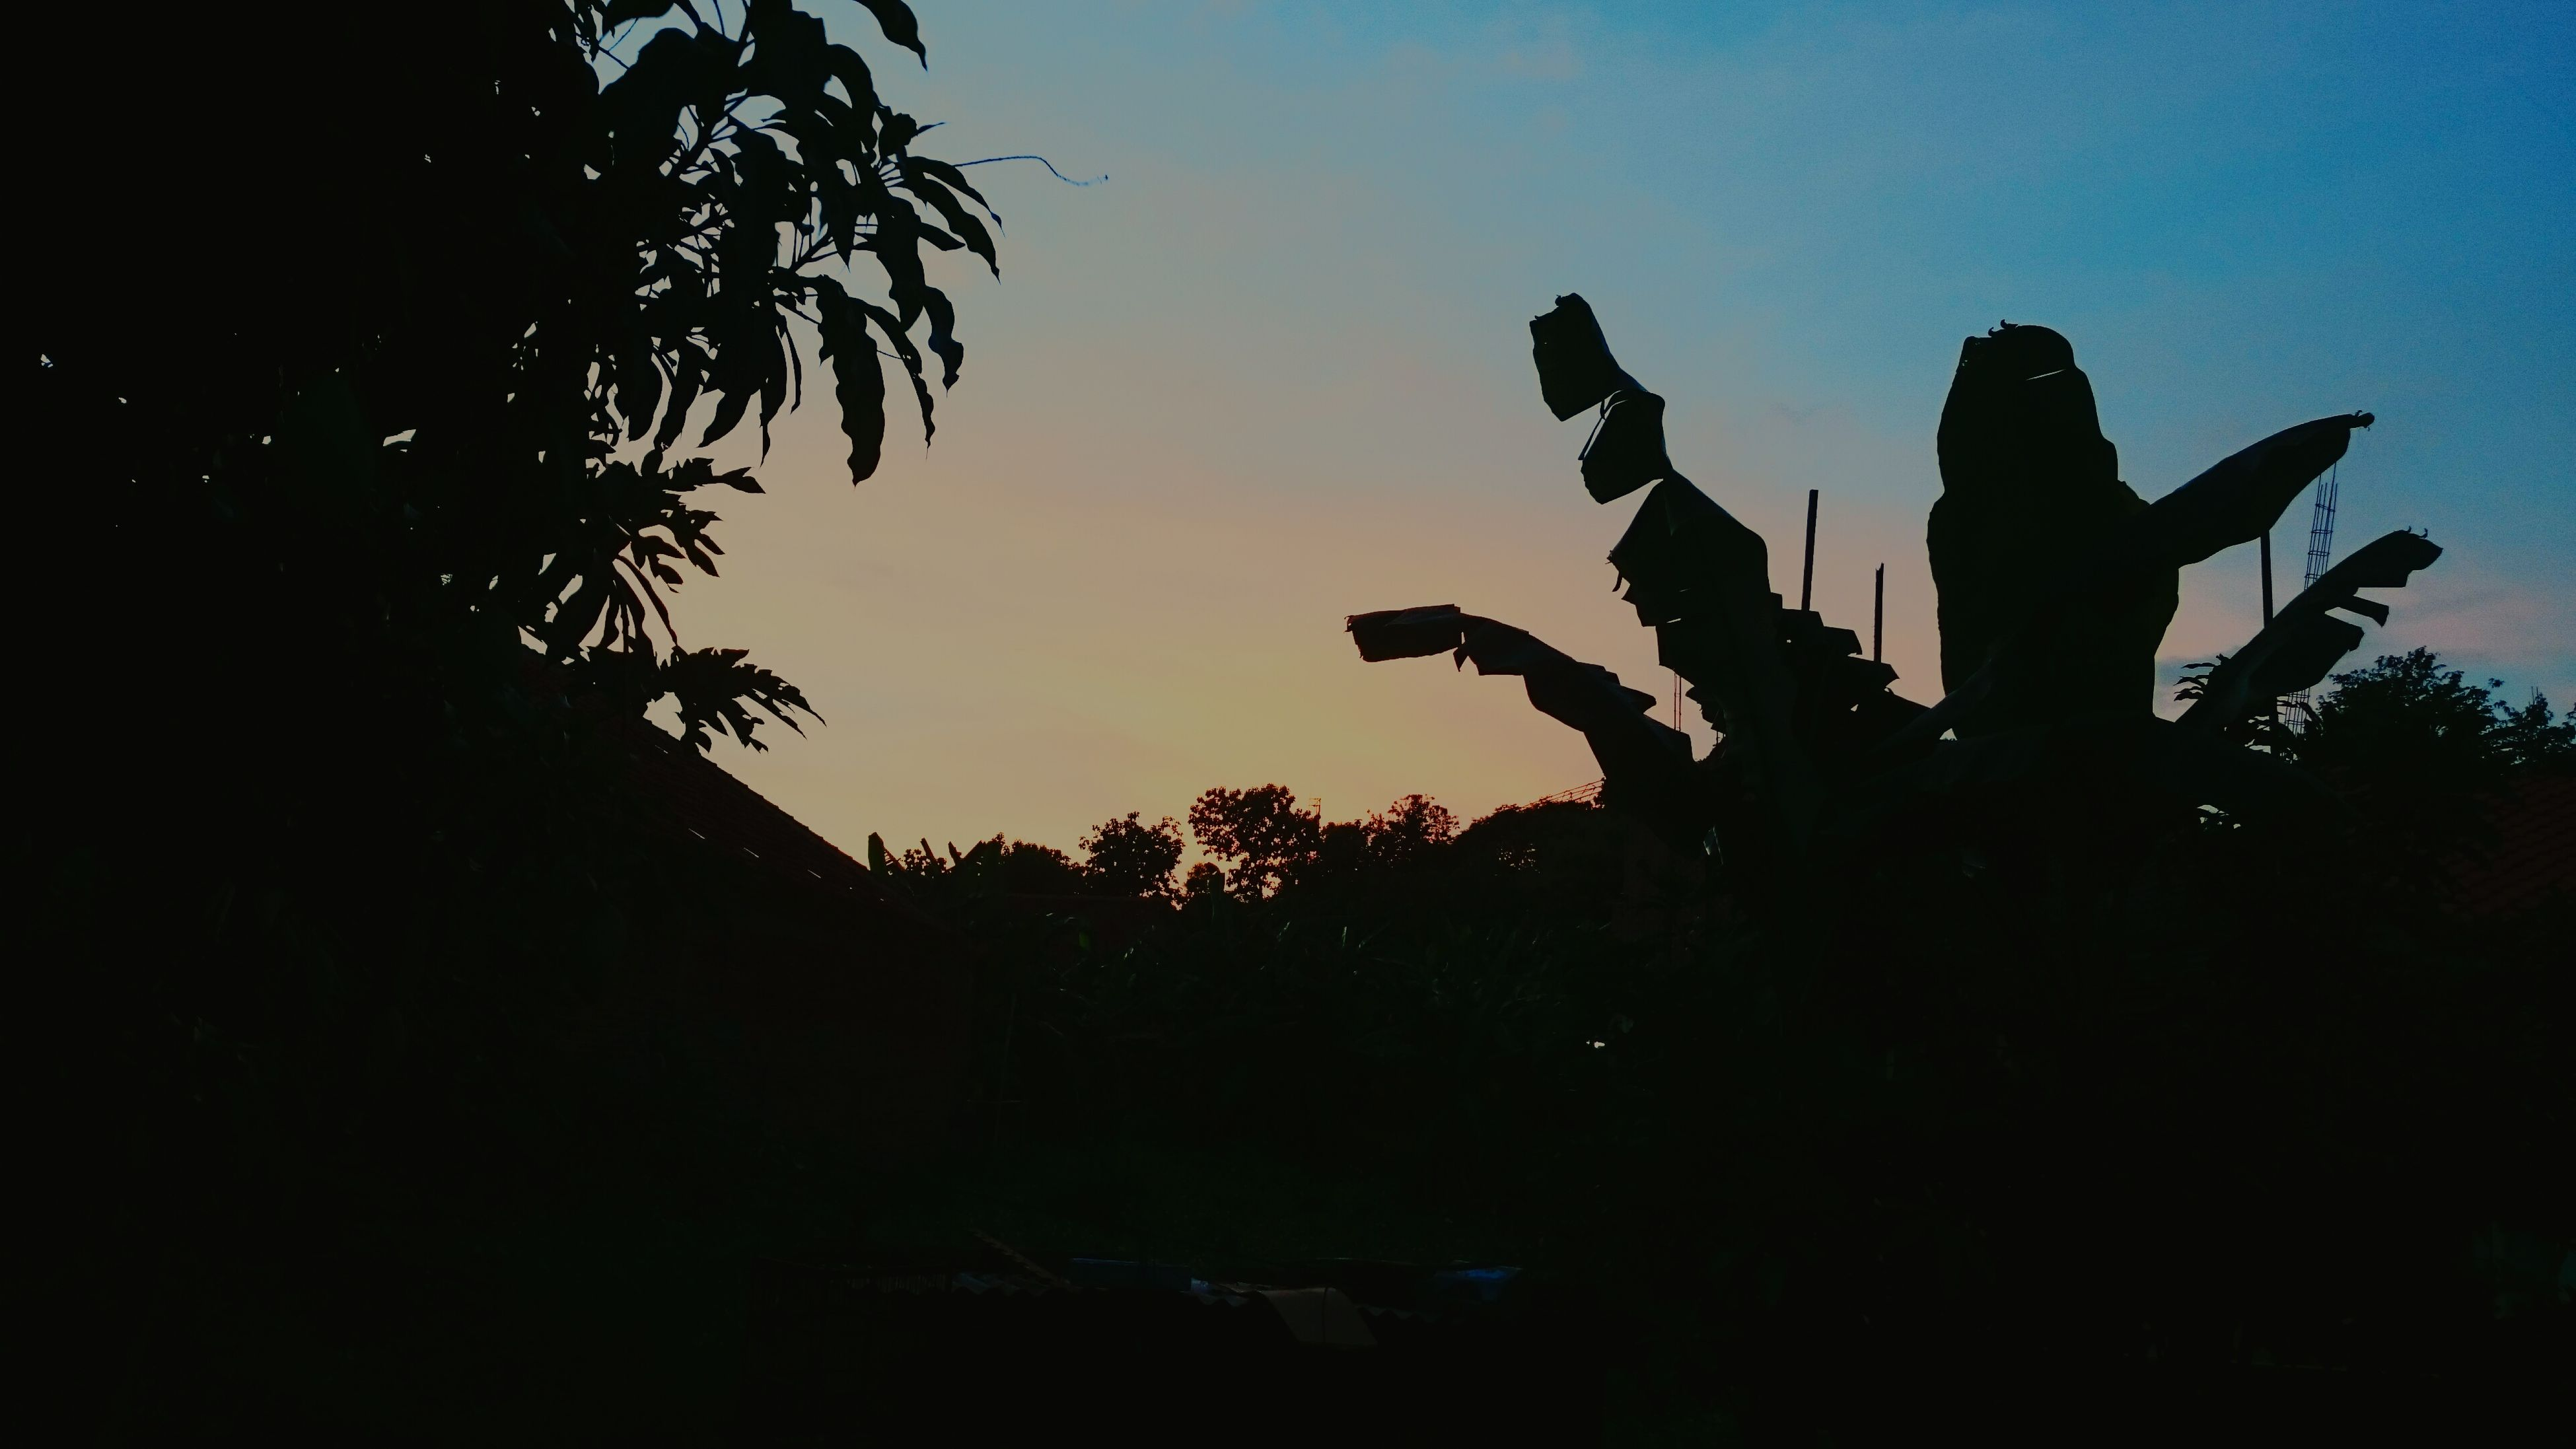 sunset, silhouette, nature, sky, beauty in nature, outdoors, no people, day